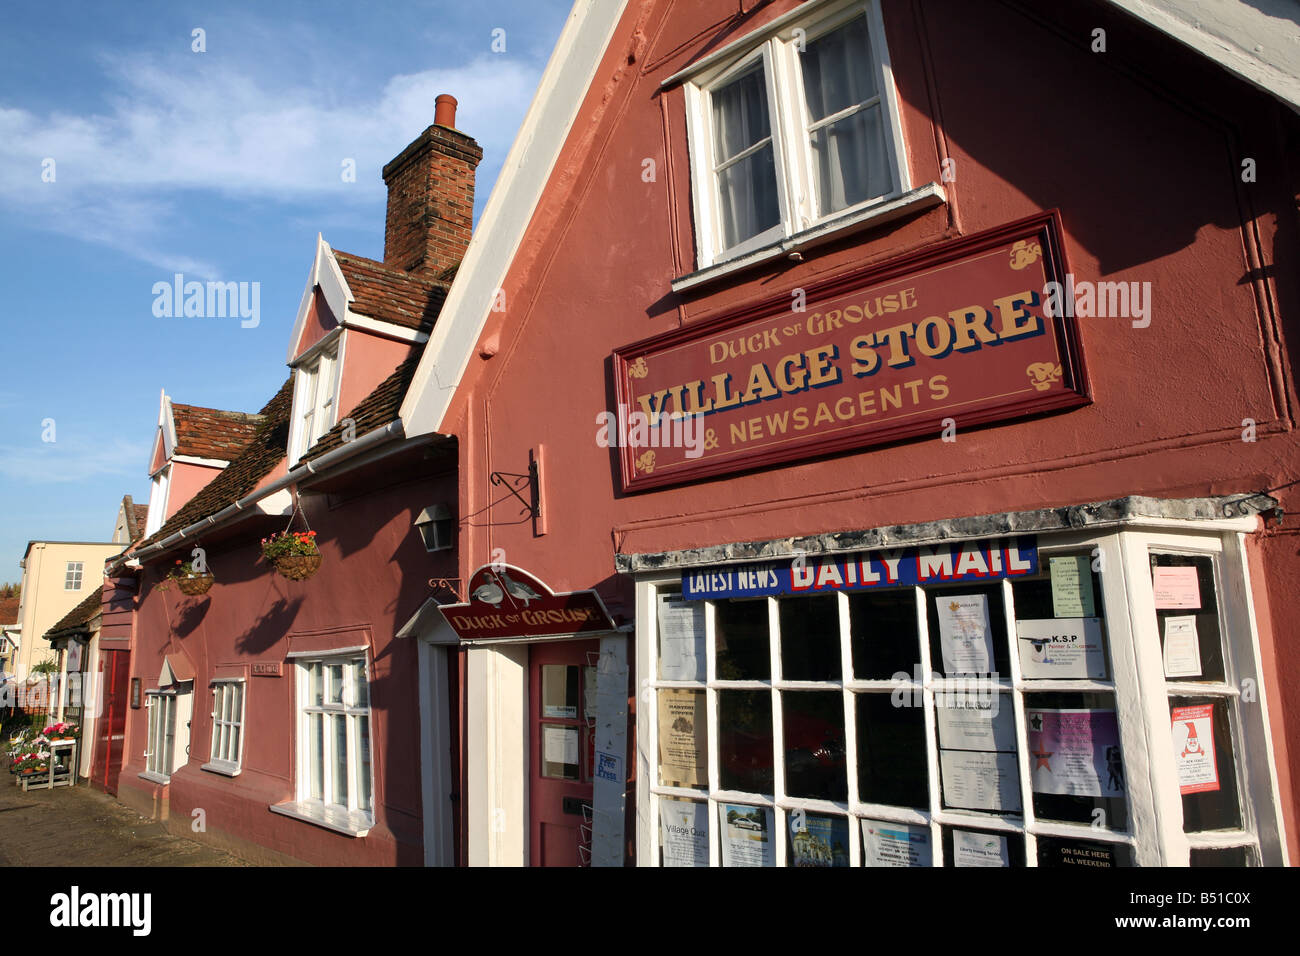 Duck or Grouse village shop at the village of Cavendish in Suffolk UK - Stock Image